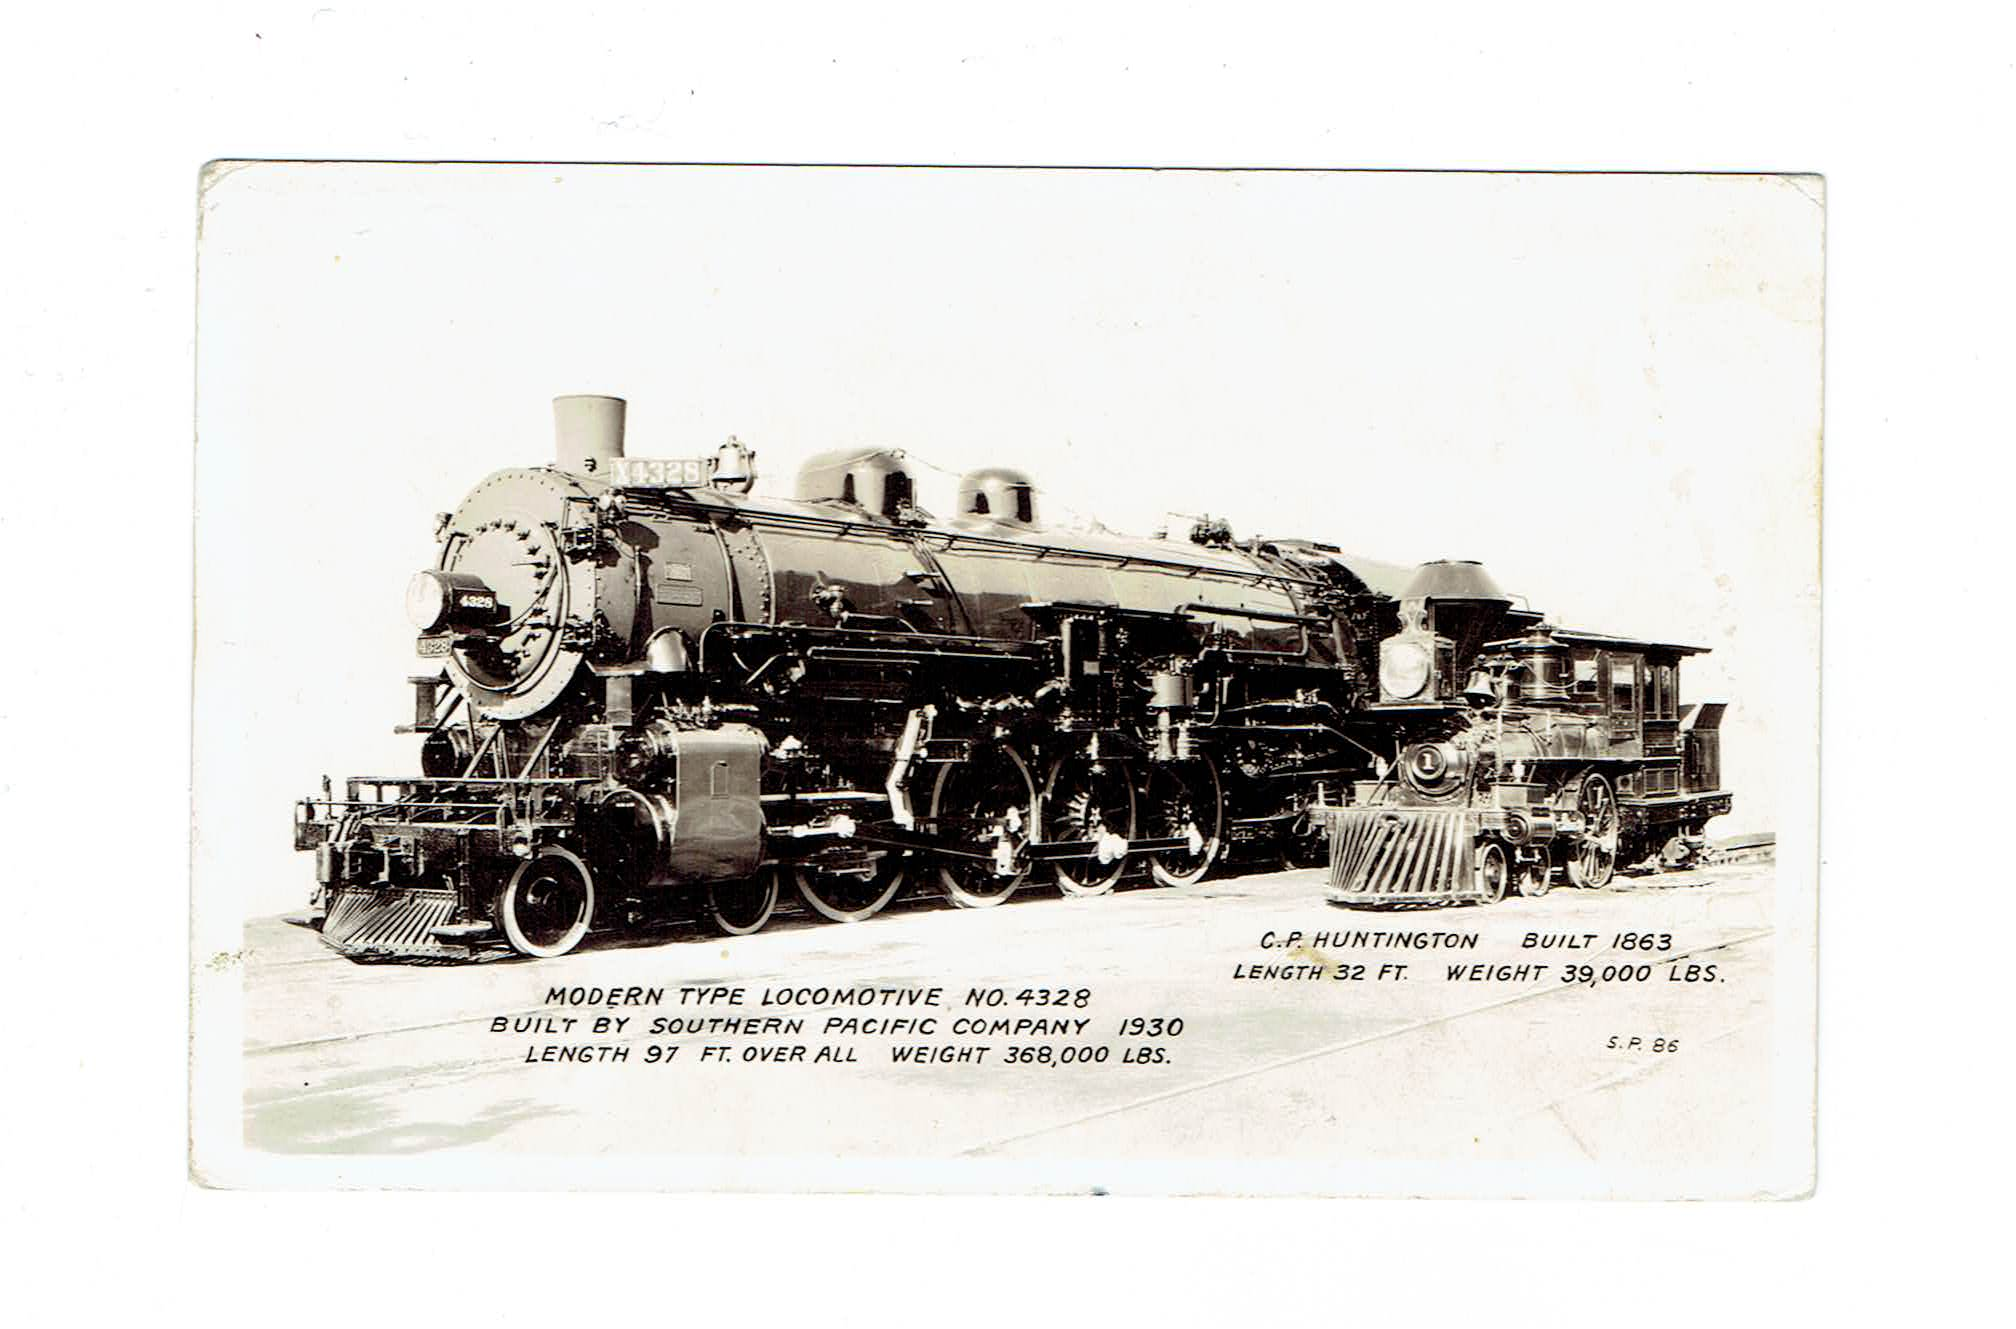 1863 And 1930 Train Engines Compared. RPPC Postcard.